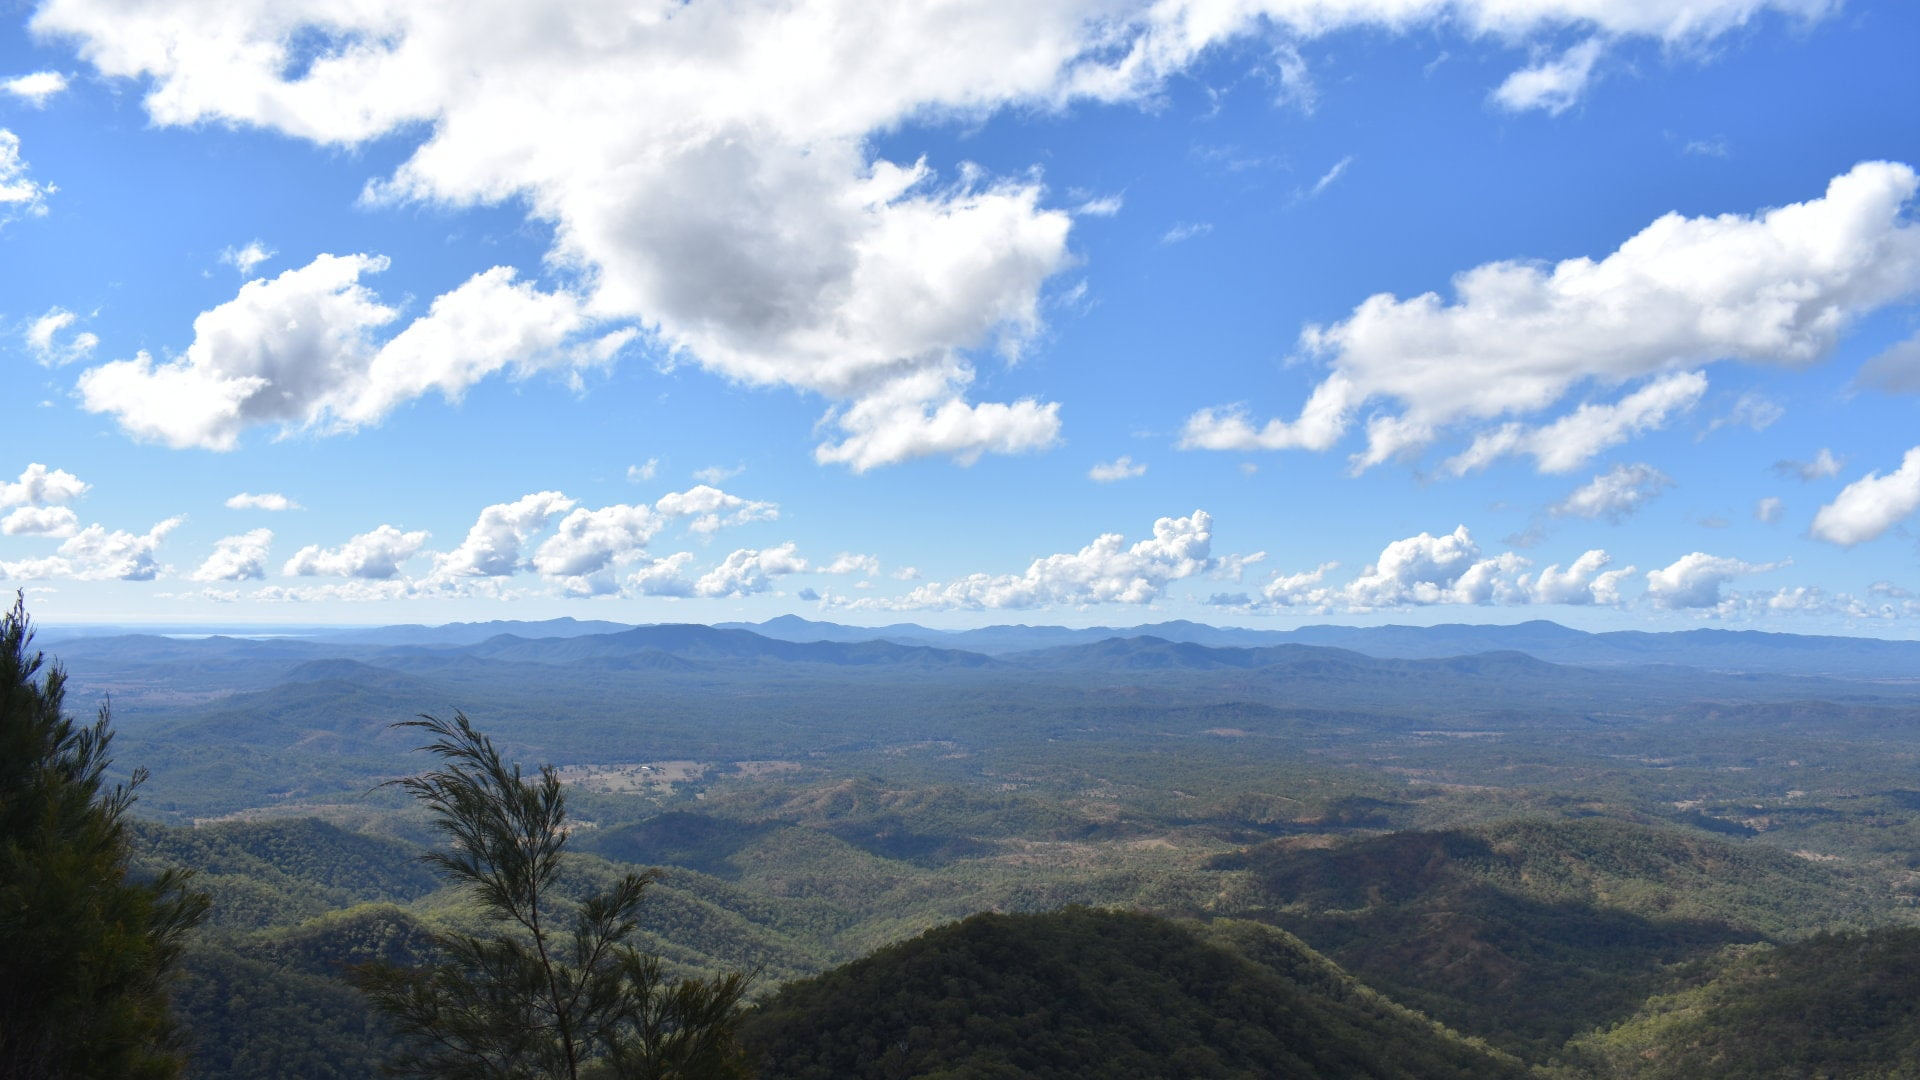 View from The Lookout at Kroombit Tops looking over the Boyne Valley. Kroombit Tops National Park north of Cania Gorge